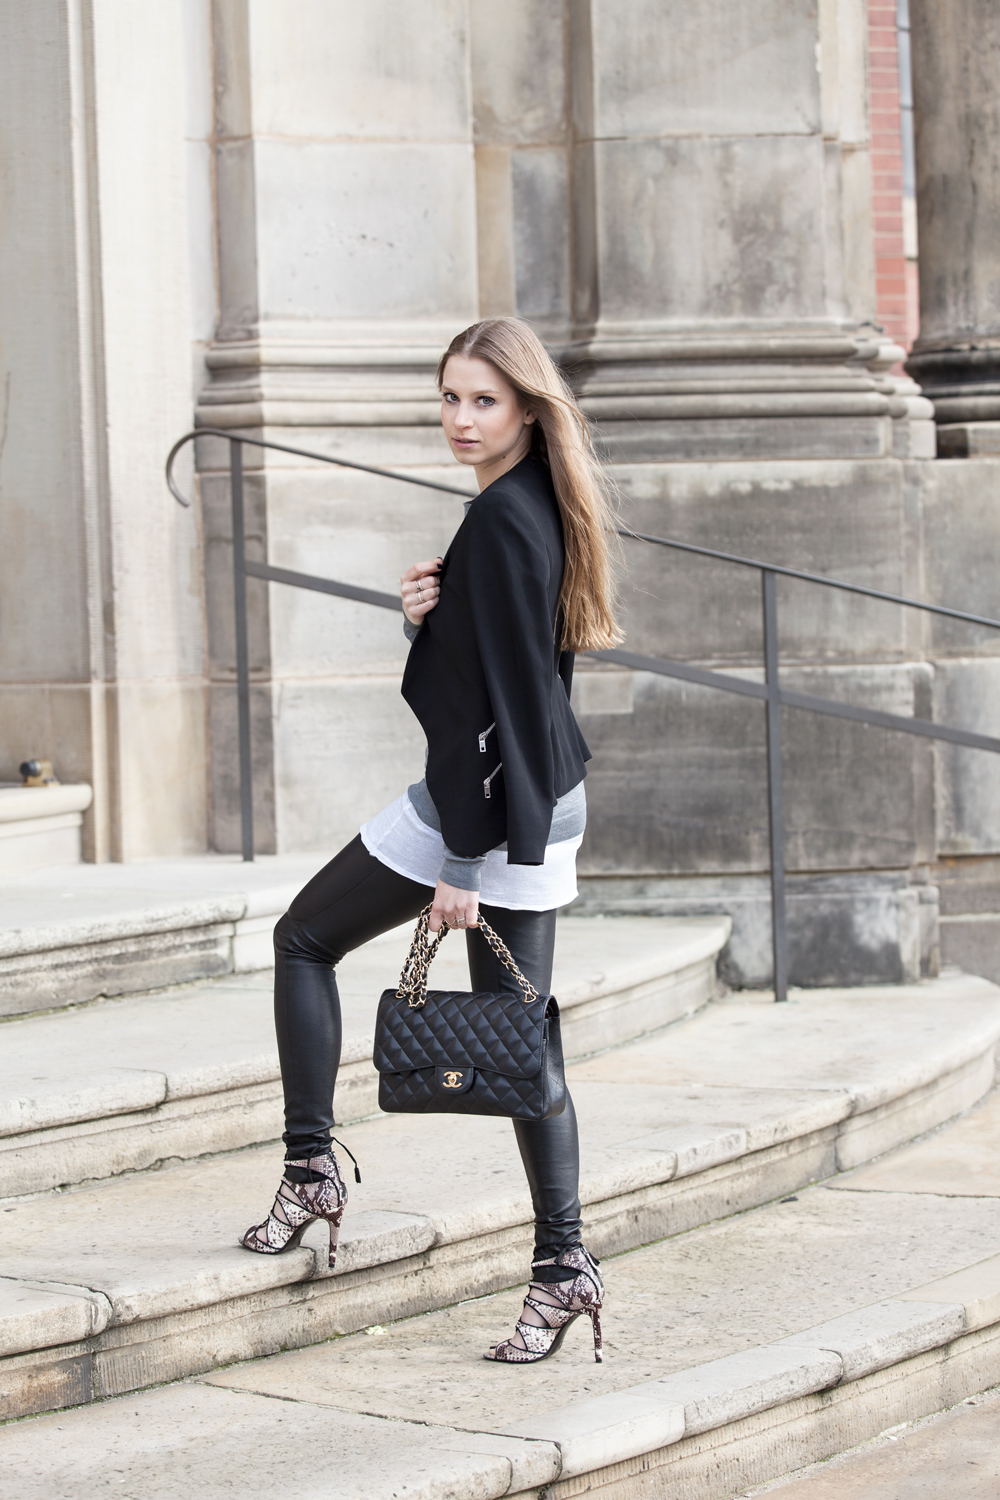 Via Just The Design: Alexa Carolin Thiele is wearing a black blazer and heels from Zara, Samsoe Samsoe leather pants and a Chanel handbag